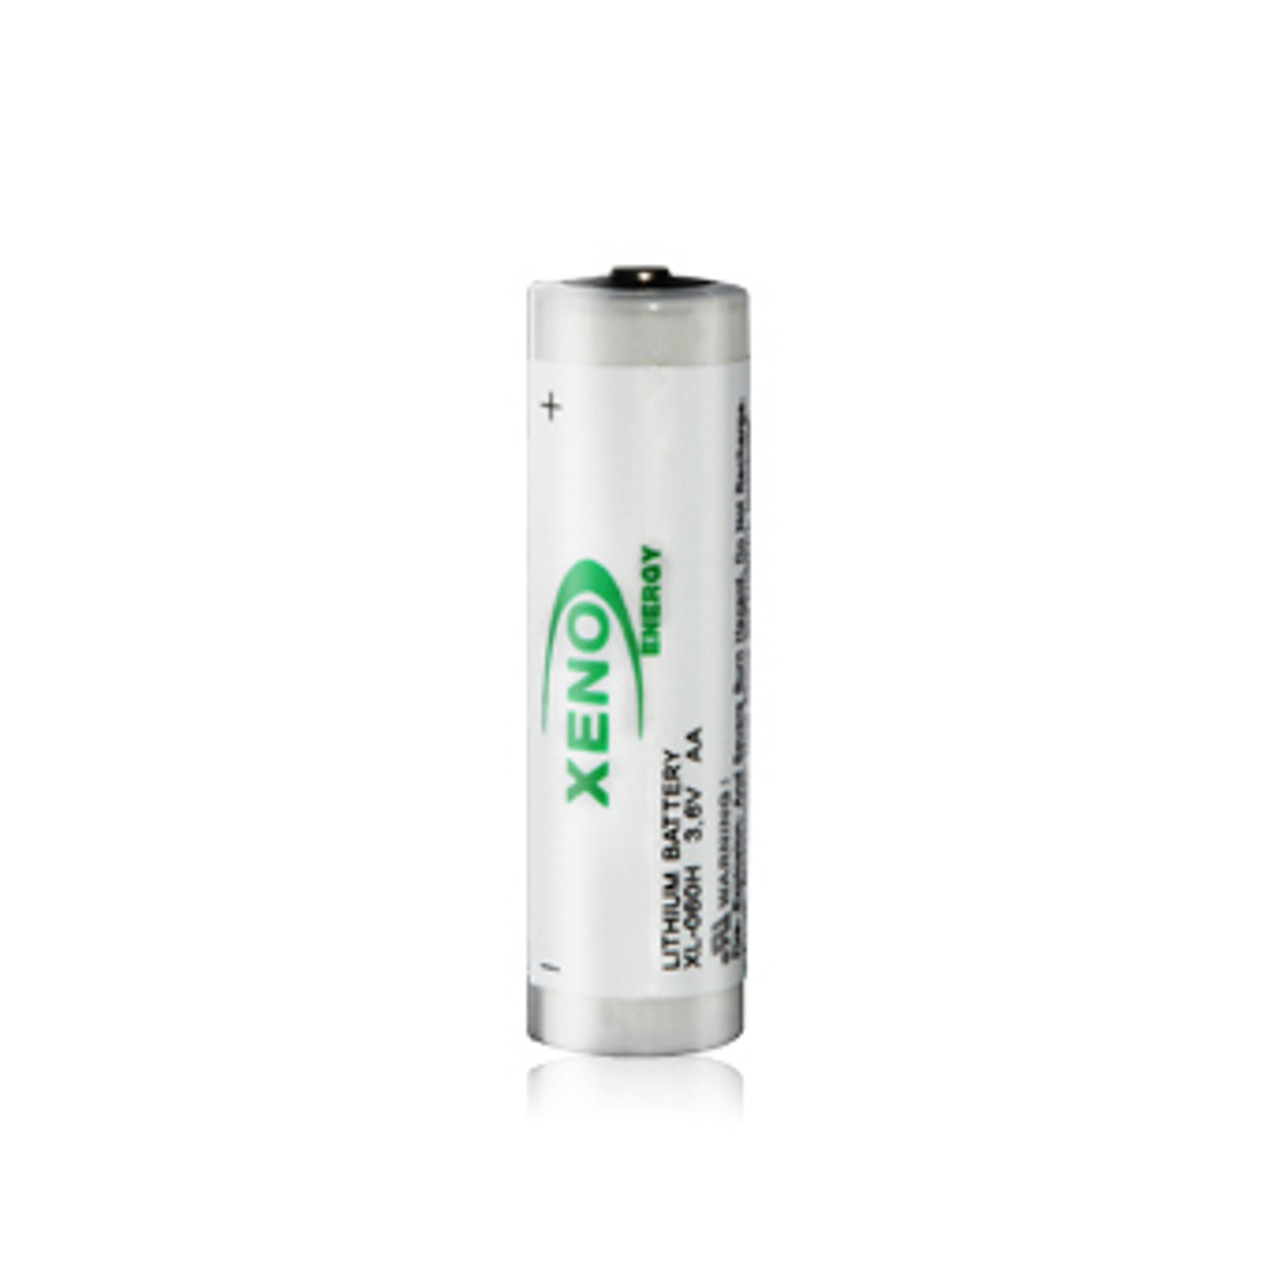 Xeno Energy XL-060H AA 3 6V Primary Lithium Battery